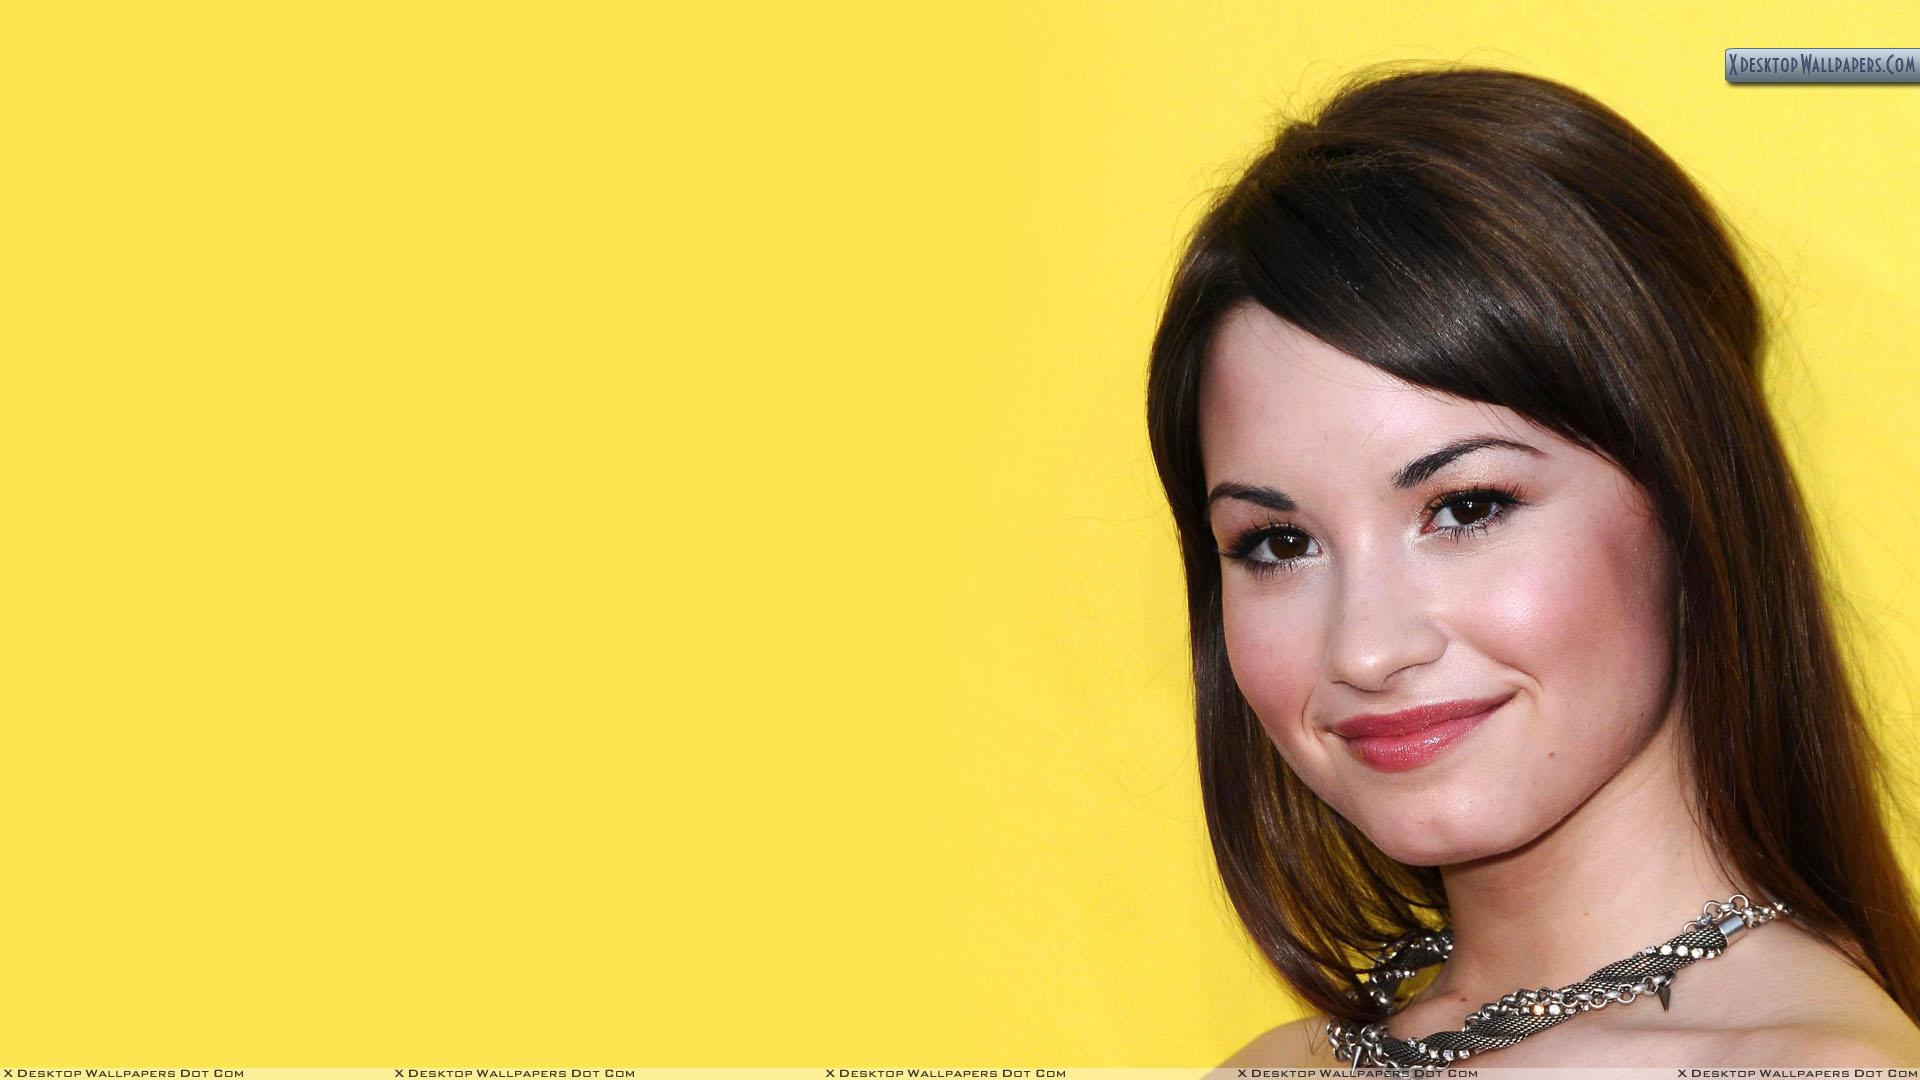 Demi Lovato Smiling Cute Face Closeup And Yellow Background Wallpaper 1920x1080